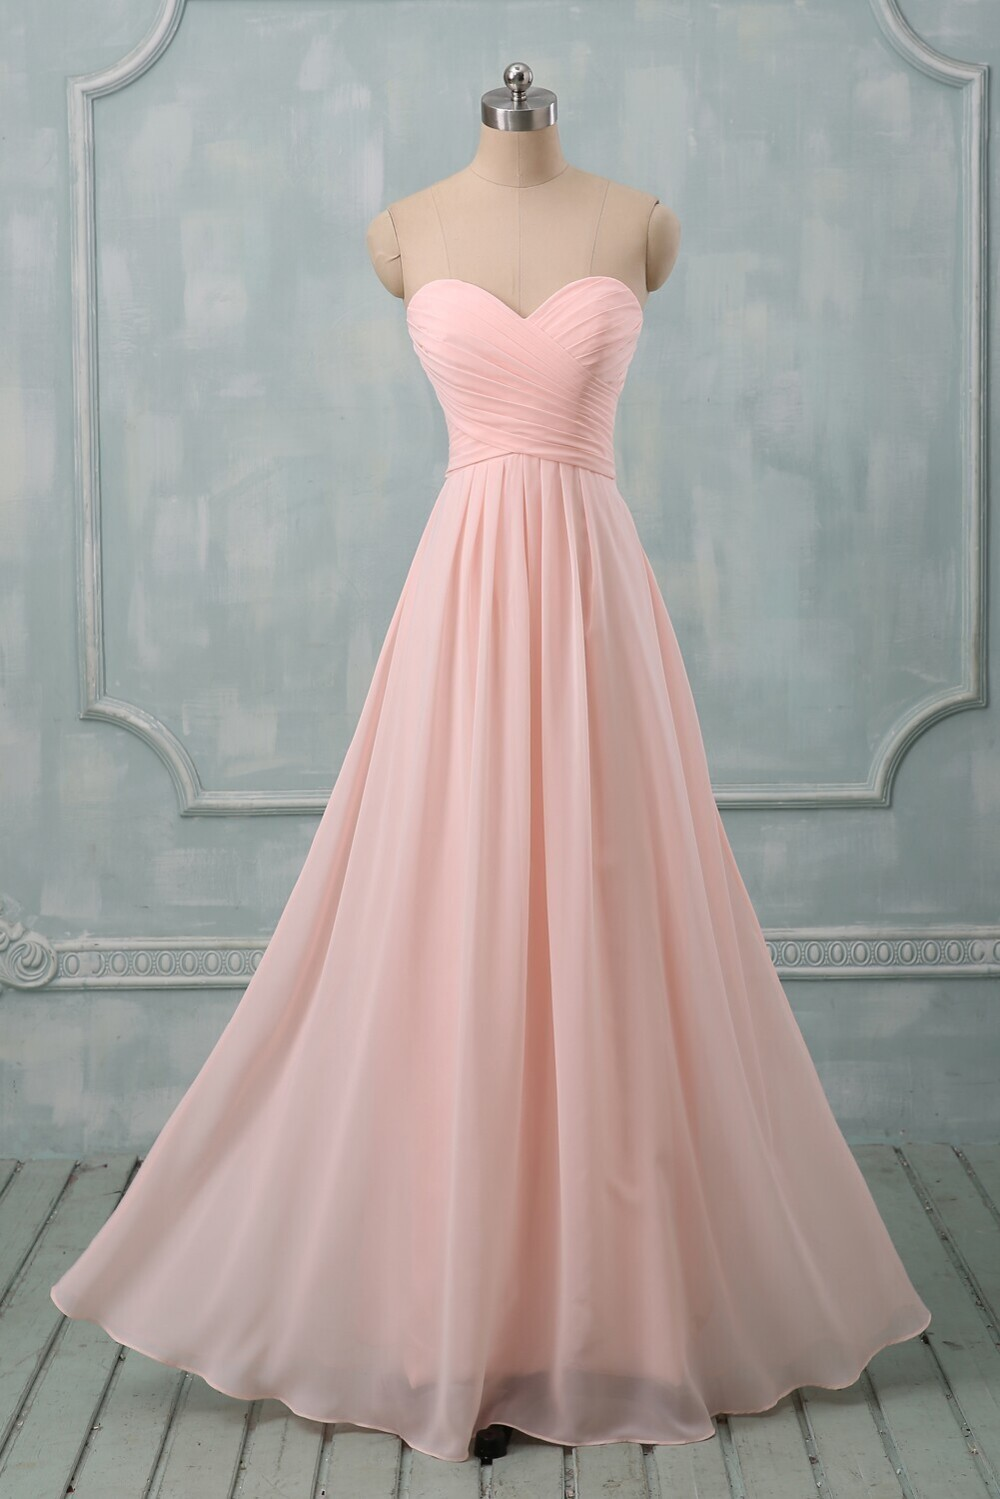 8dfb76f9c1315 Light Pink Colored Prom Dresses | Lixnet AG